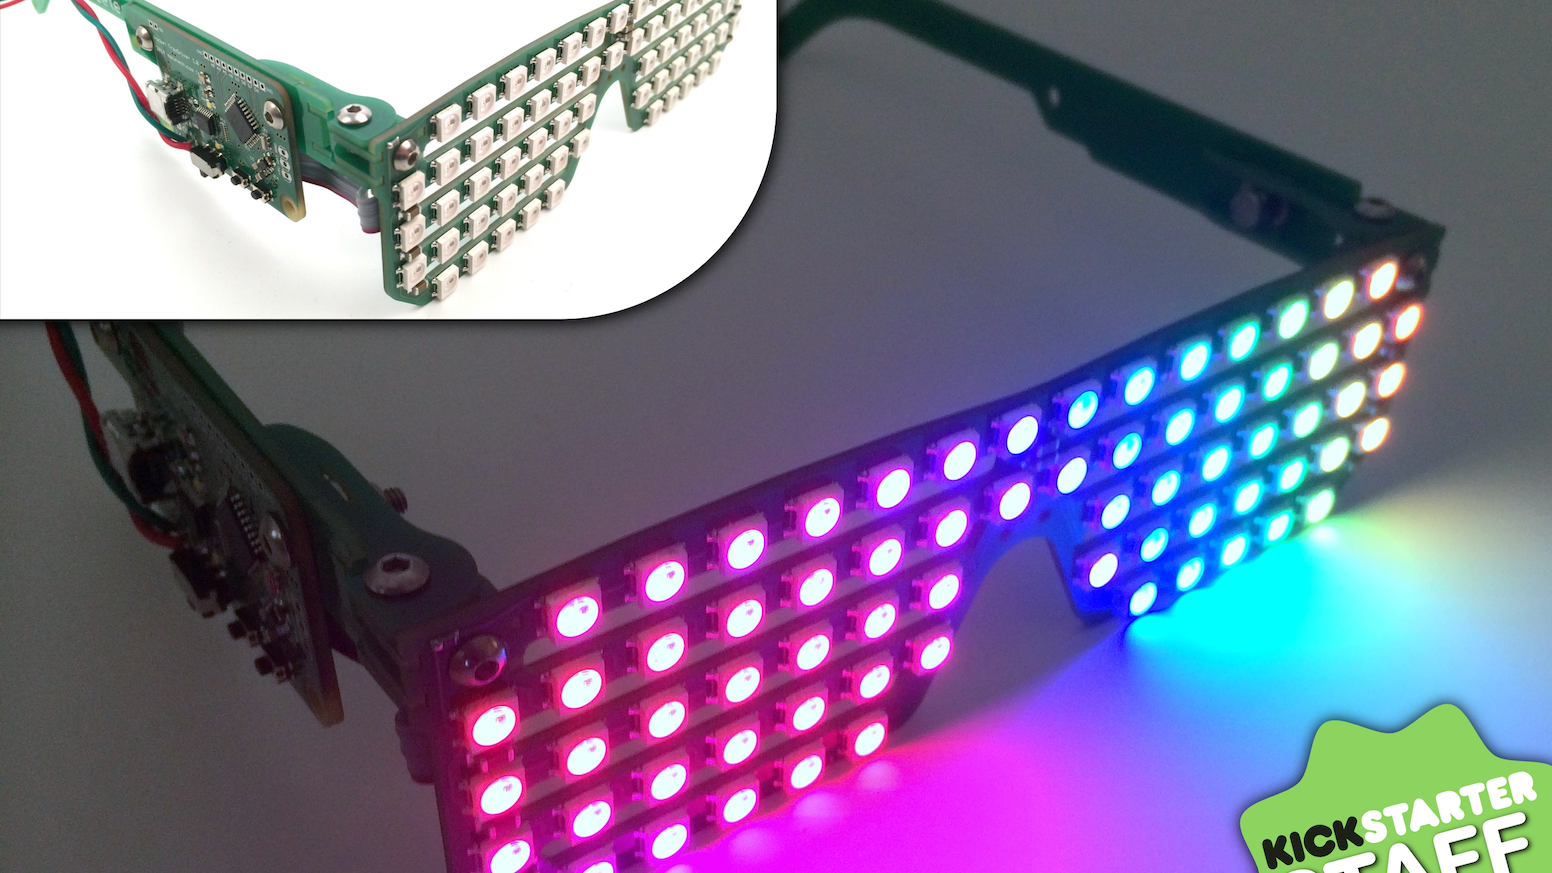 Rgb Shades Programmable Led Glasses By Macetech Llc Kickstarter To The Light Emitting Diode Using Snap Circuits Do It Yourself